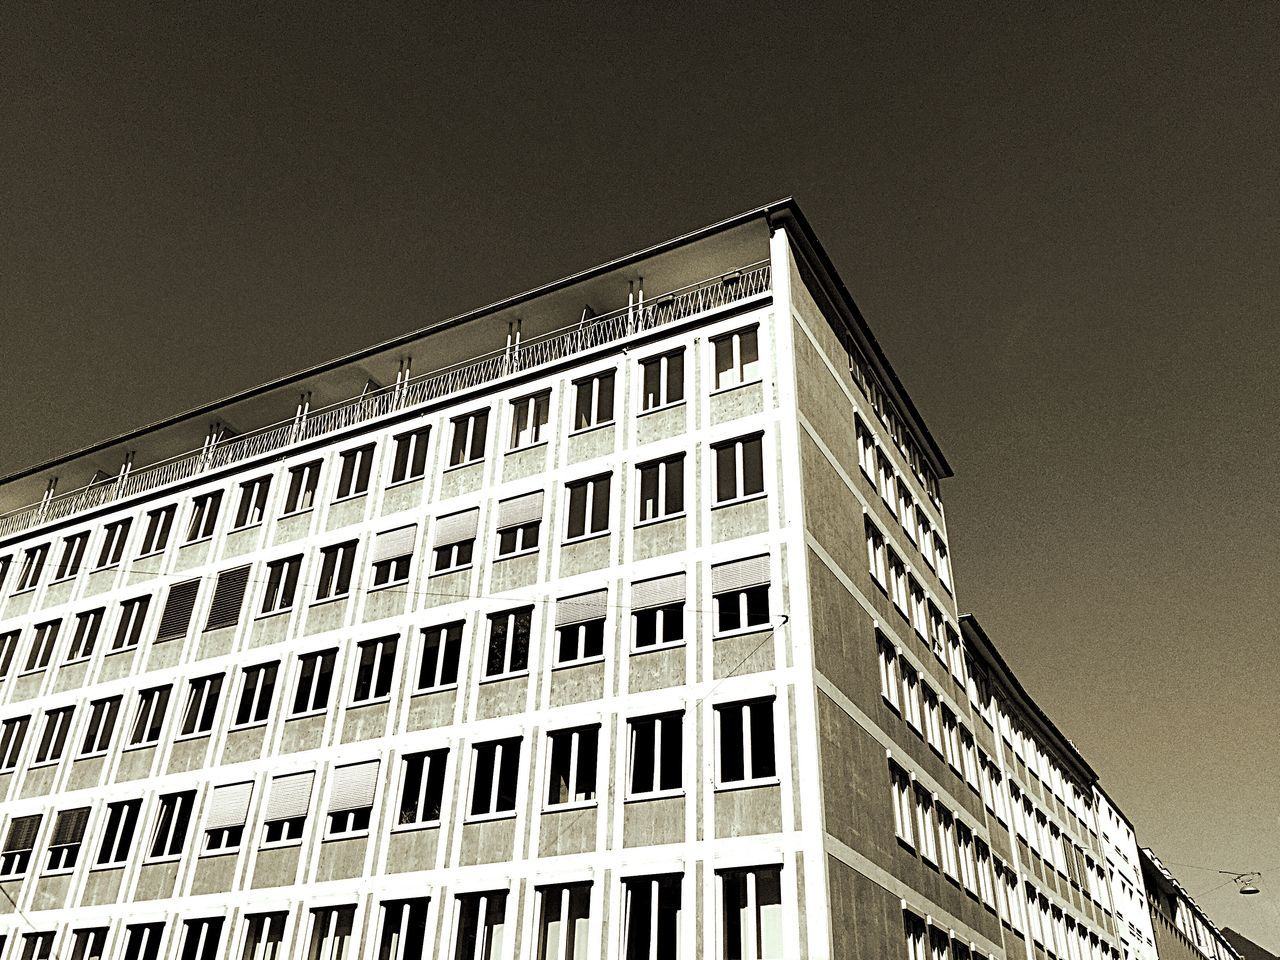 architecture, built structure, building exterior, low angle view, window, no people, outdoors, day, modern, sky, clear sky, city